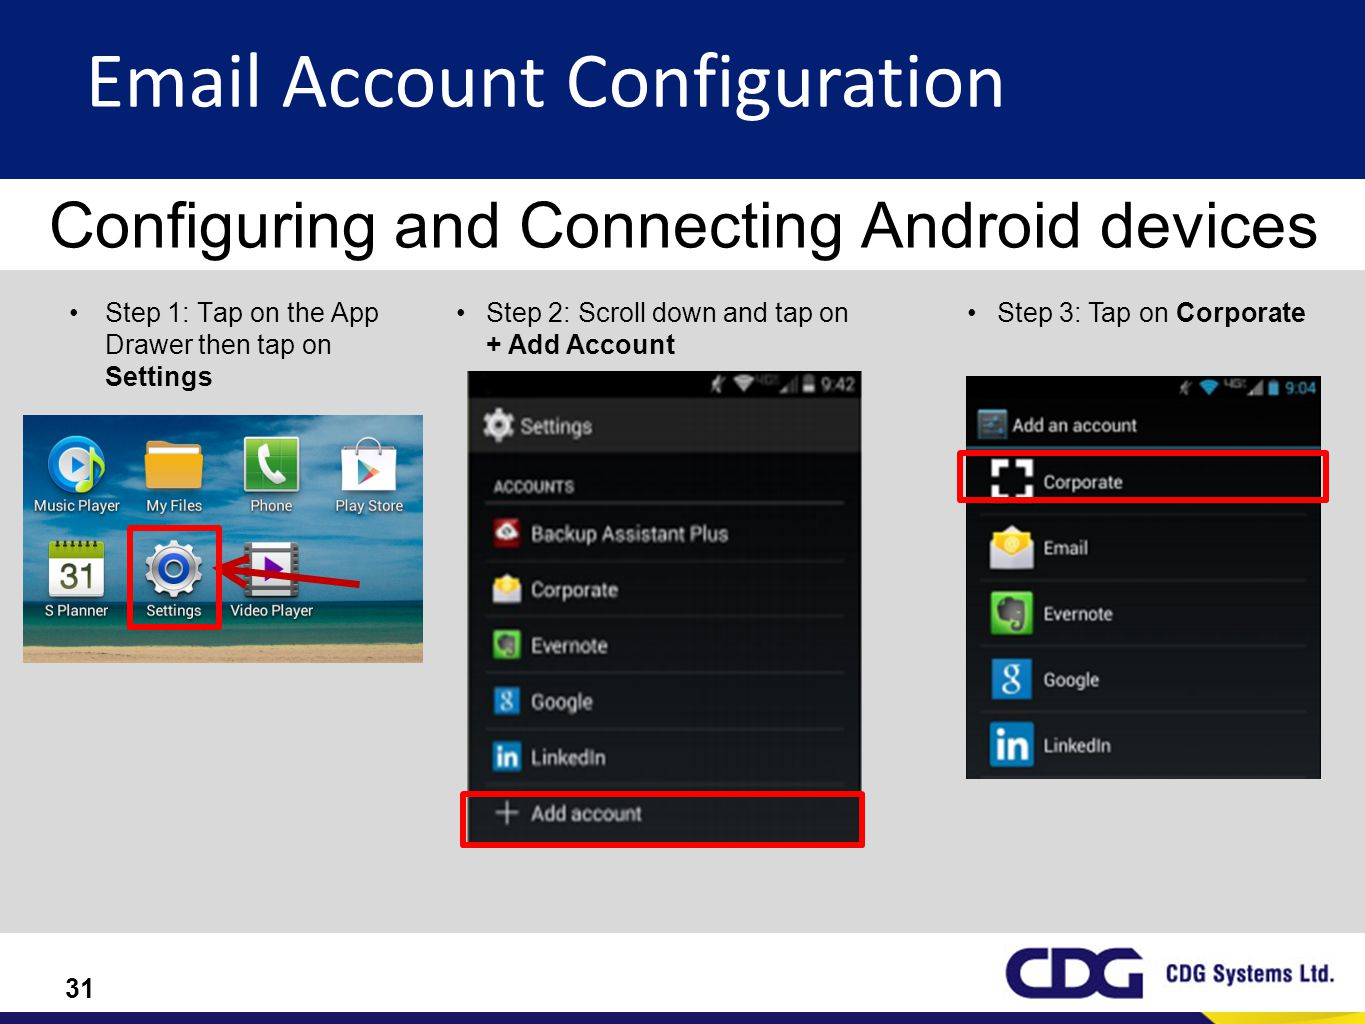 Configuring and Connecting Android devices